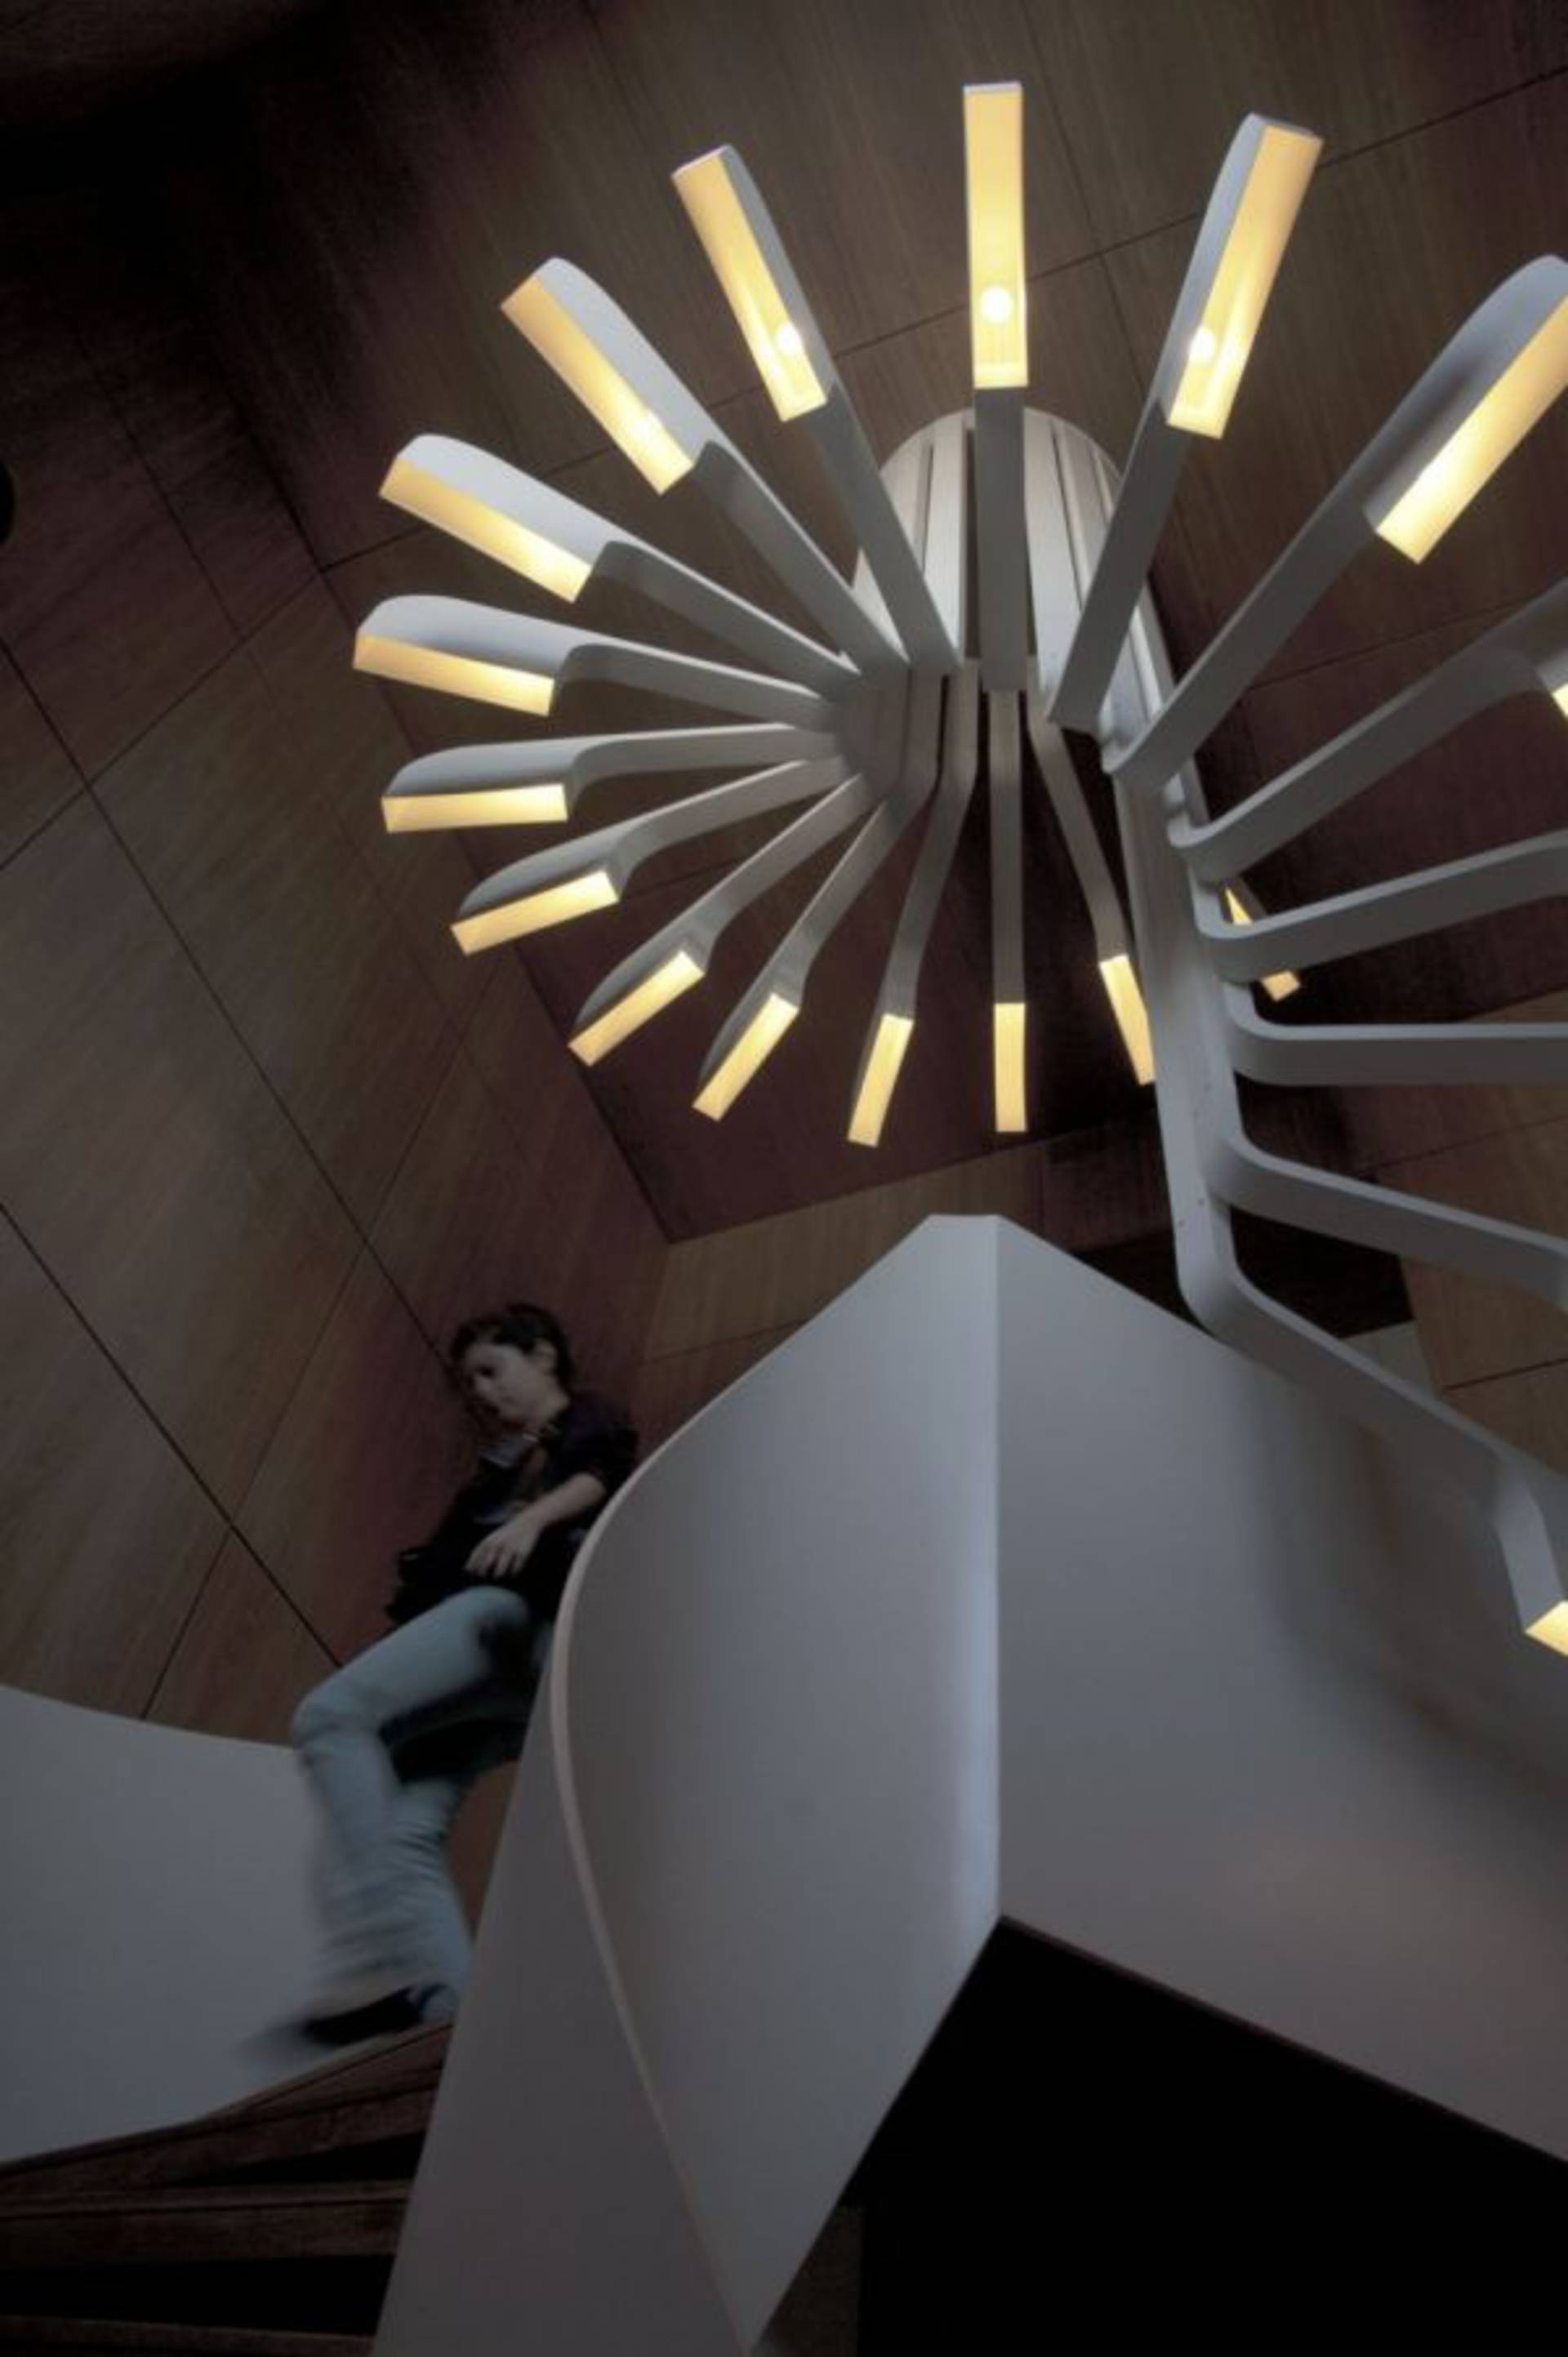 Futuristic Lighting For A Staircase By PSLAB